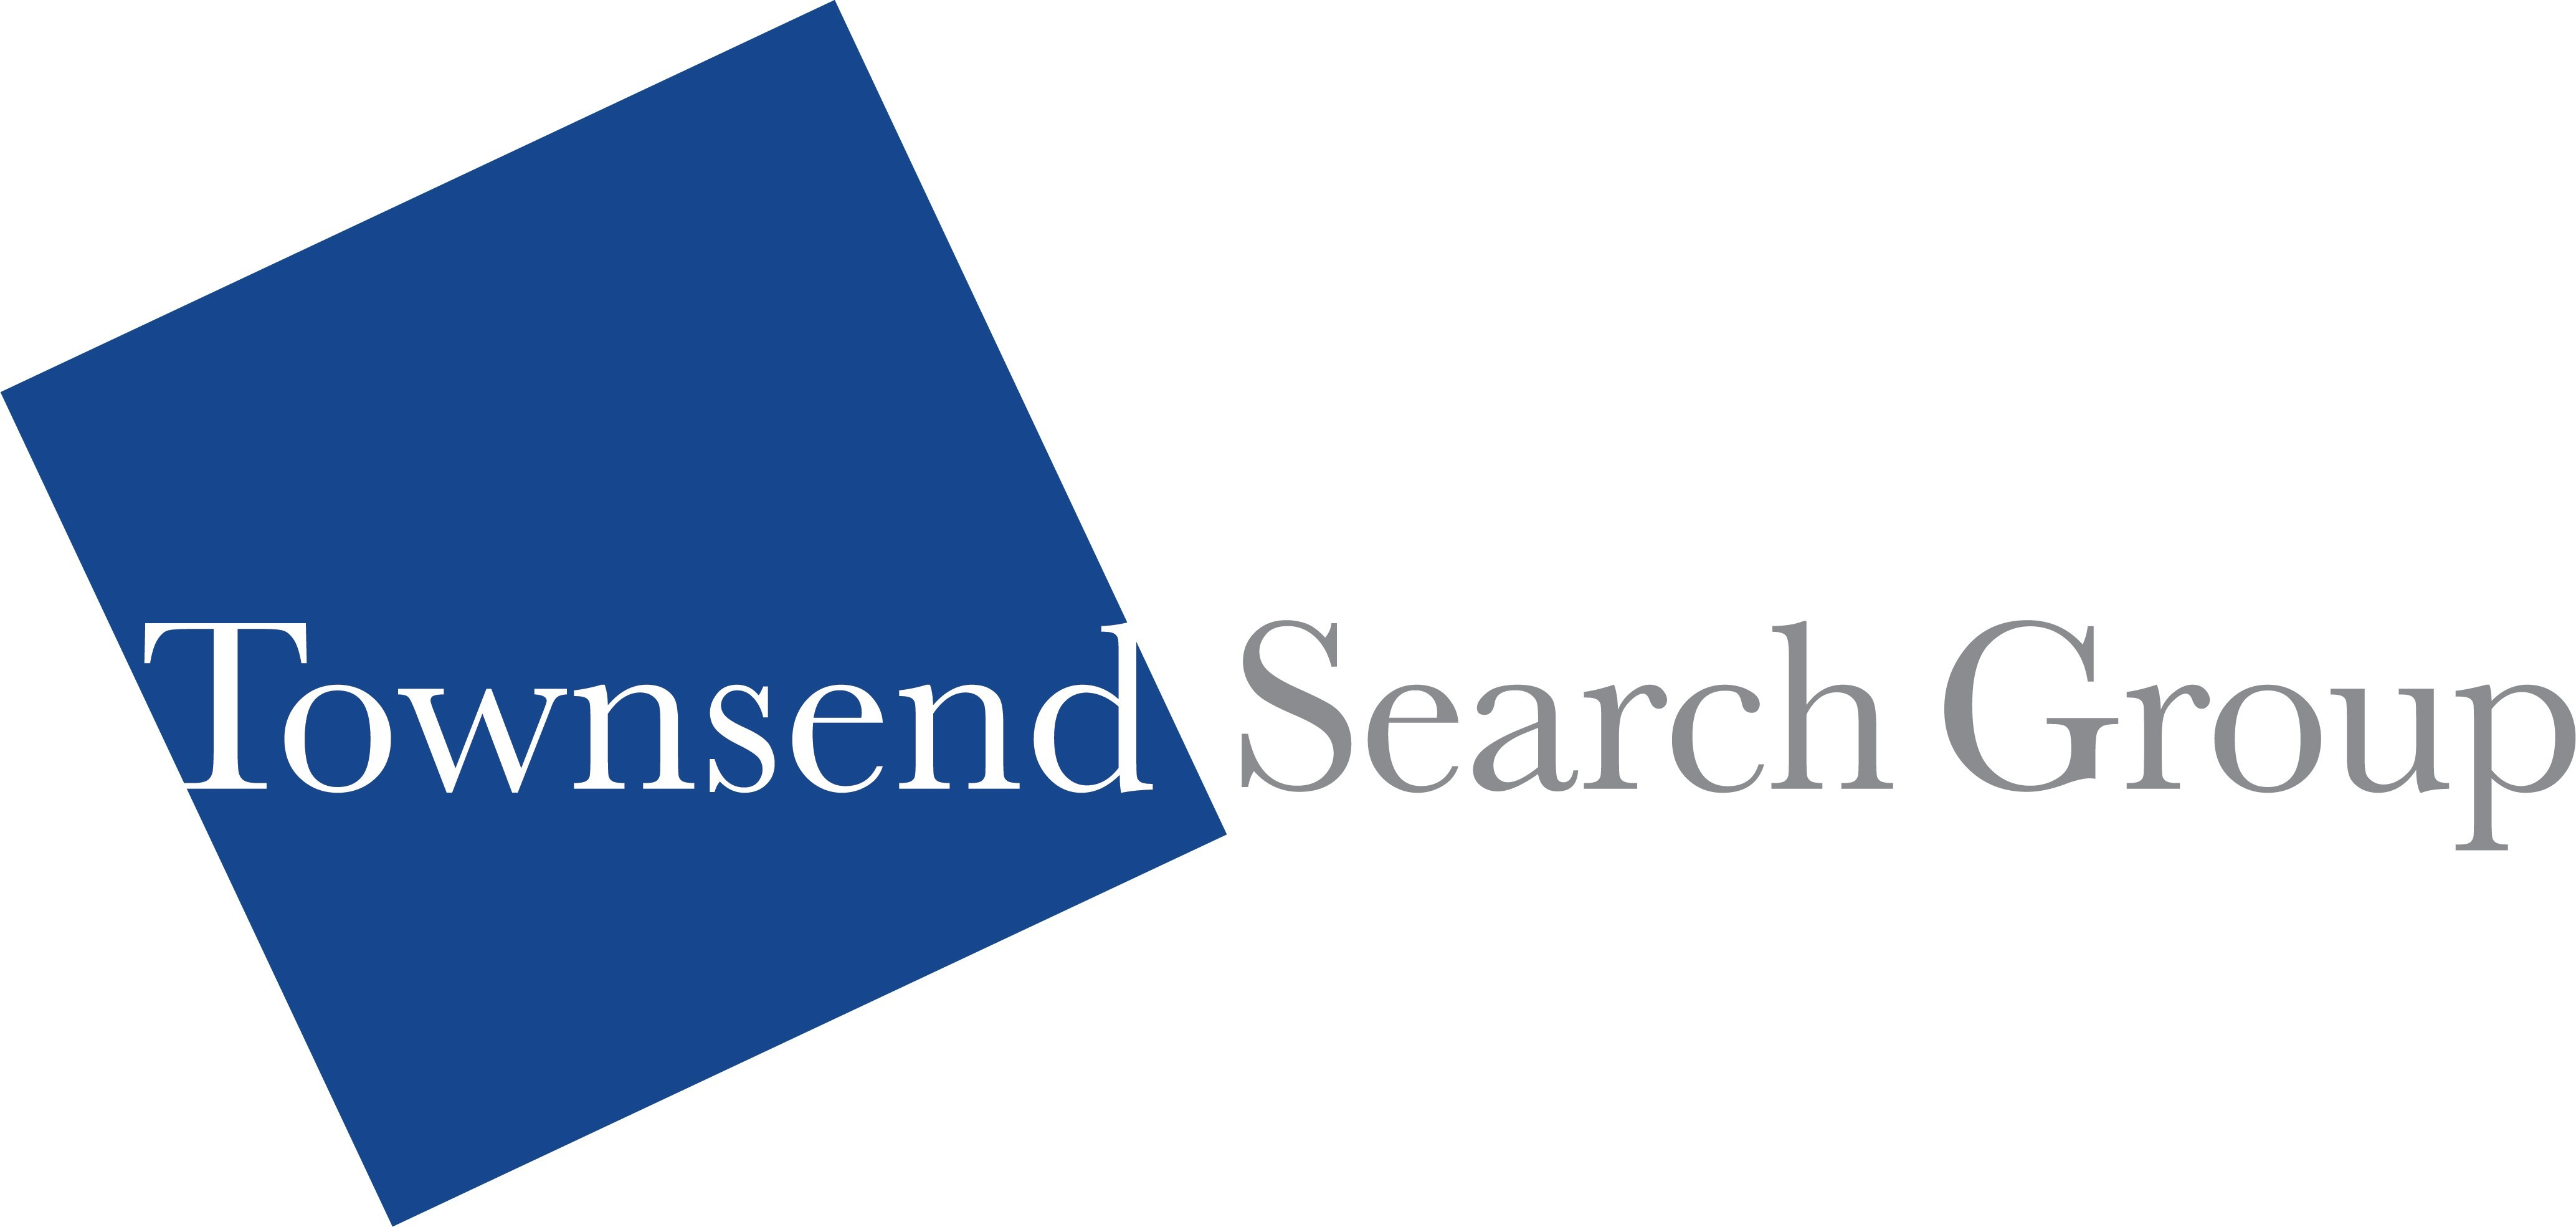 Townsend Search Group